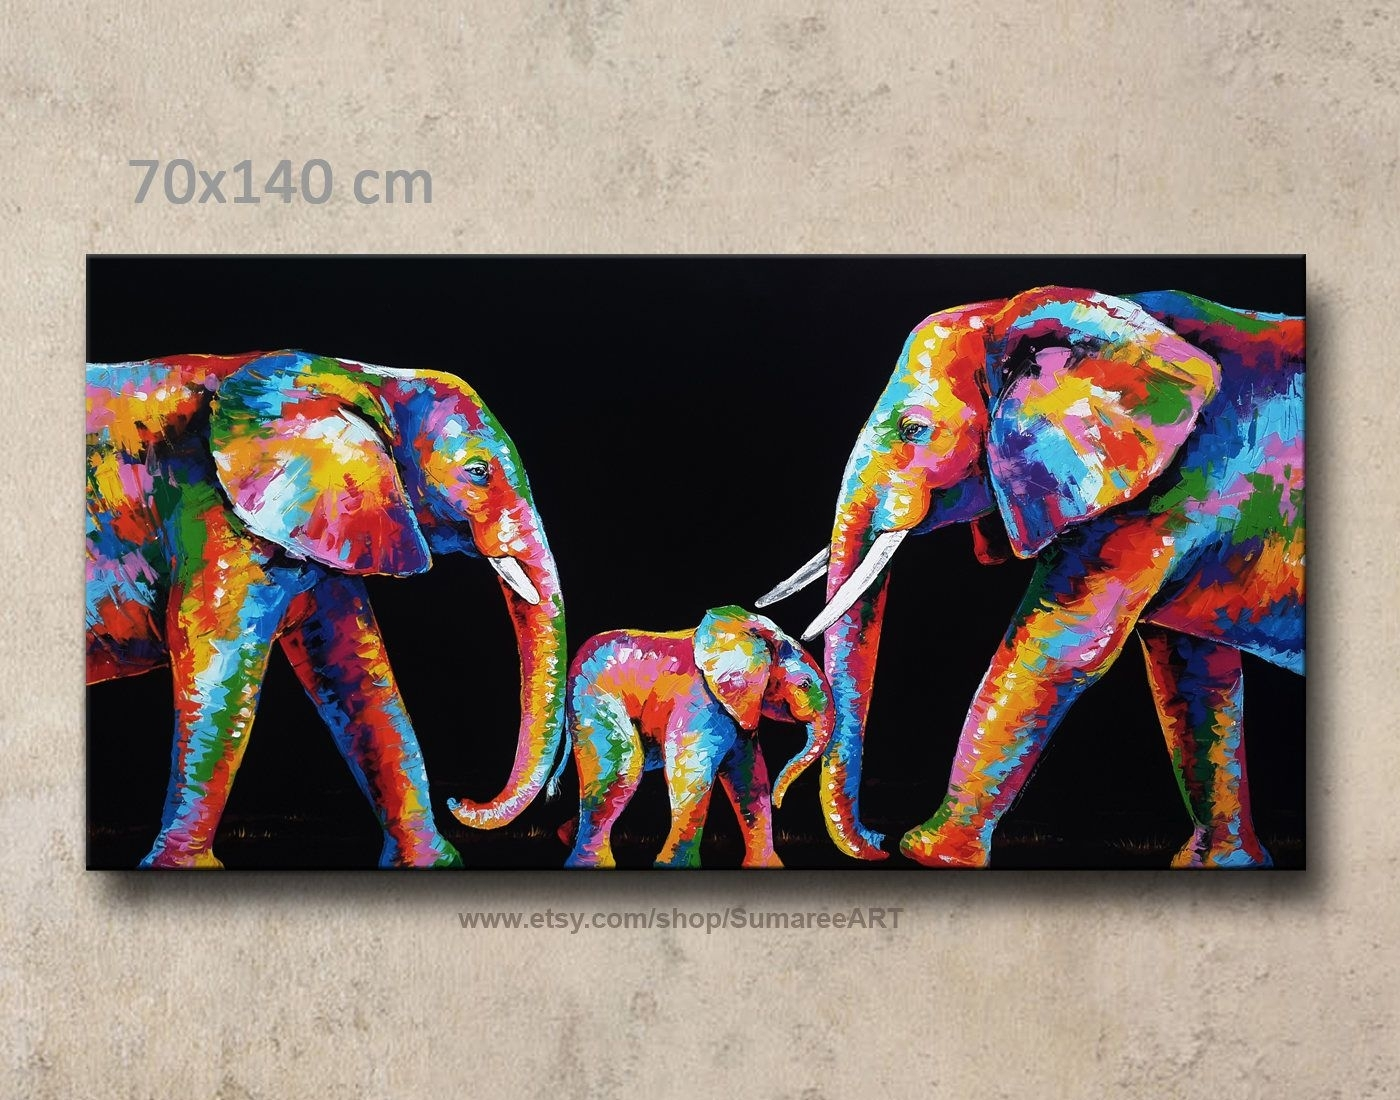 70 X 140 Cm,colorful Elephant Painting Wall Decor | Canvas Wall For Most Current Abstract Elephant Wall Art (View 15 of 20)